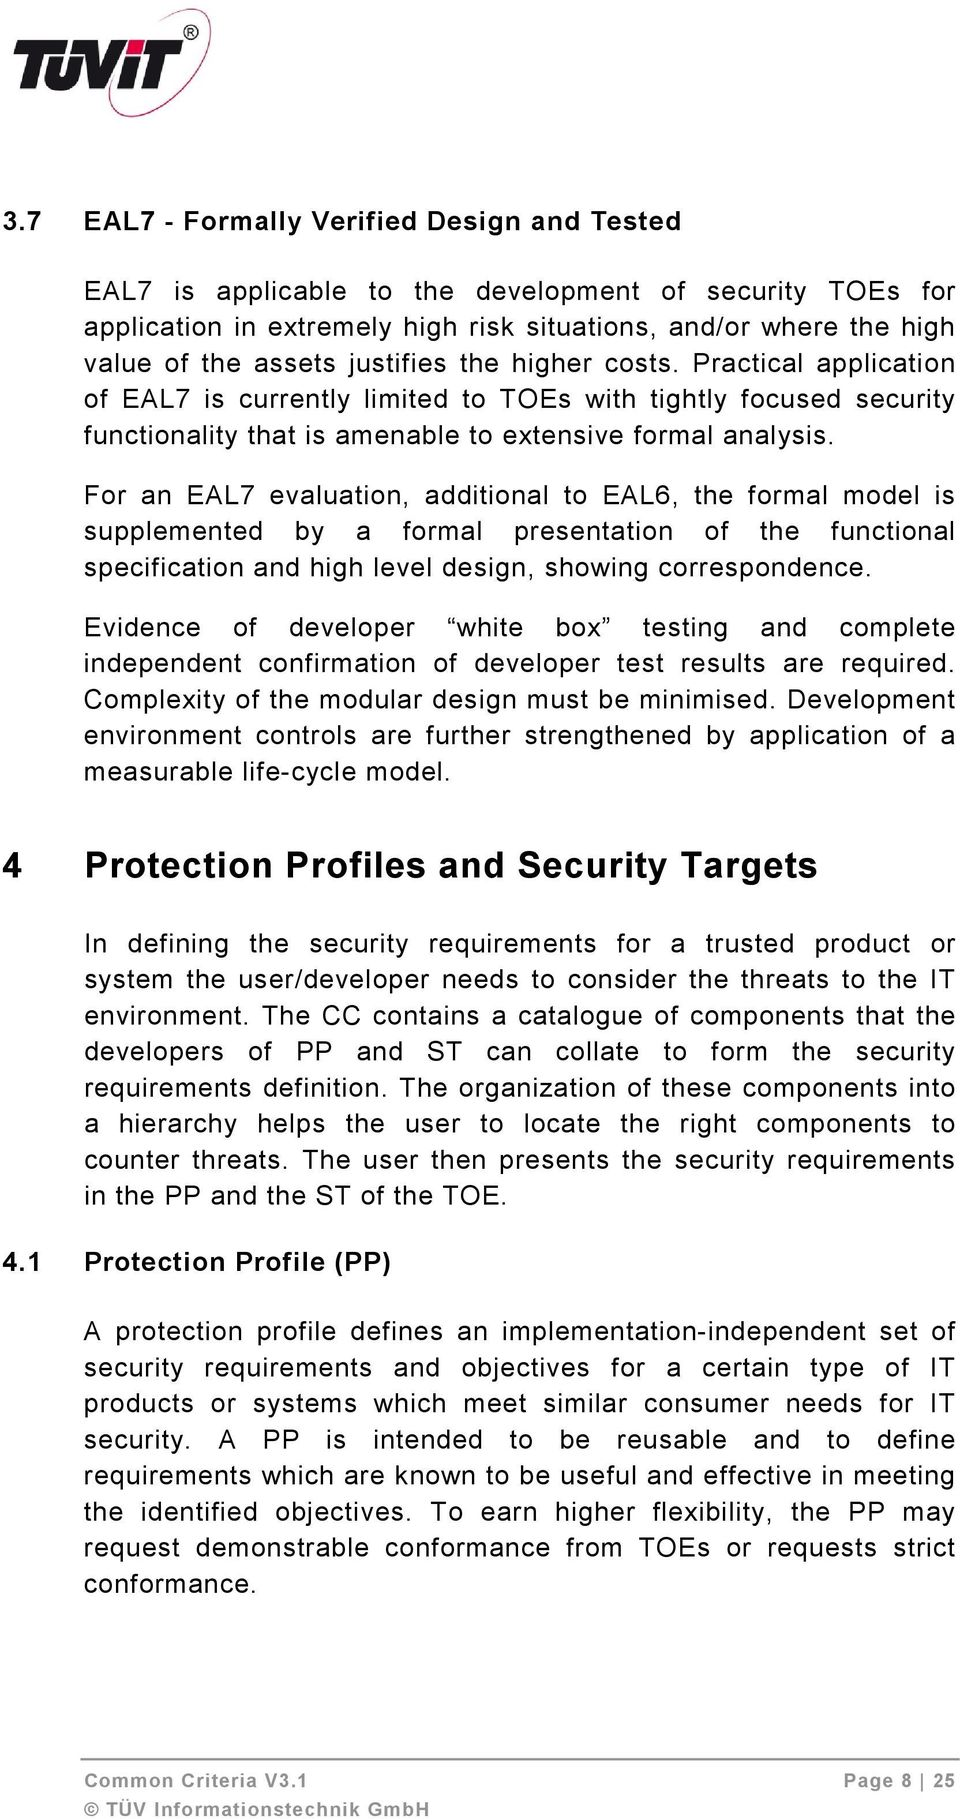 For an EAL7 evaluation, additional to EAL6, the formal model is supplemented by a formal presentation of the functional specification and high level design, showing correspondence.